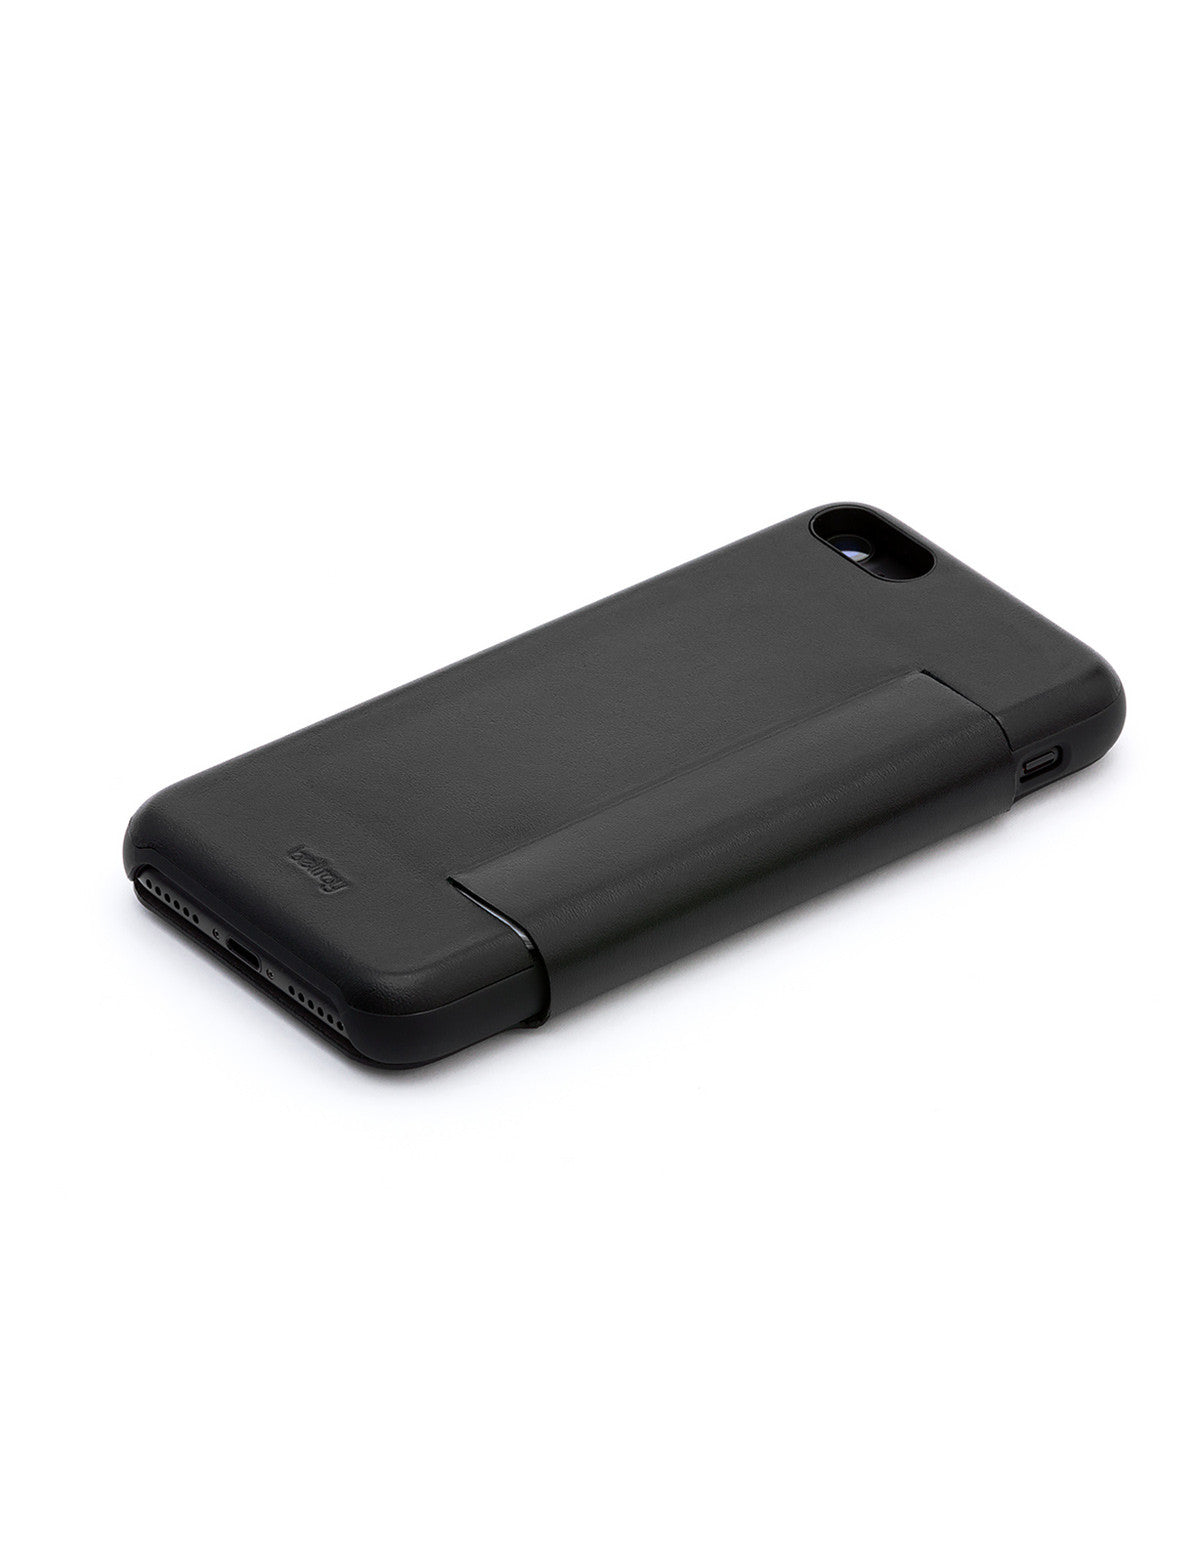 Bellroy Phone Wallet i7 Black - Still Life - 3